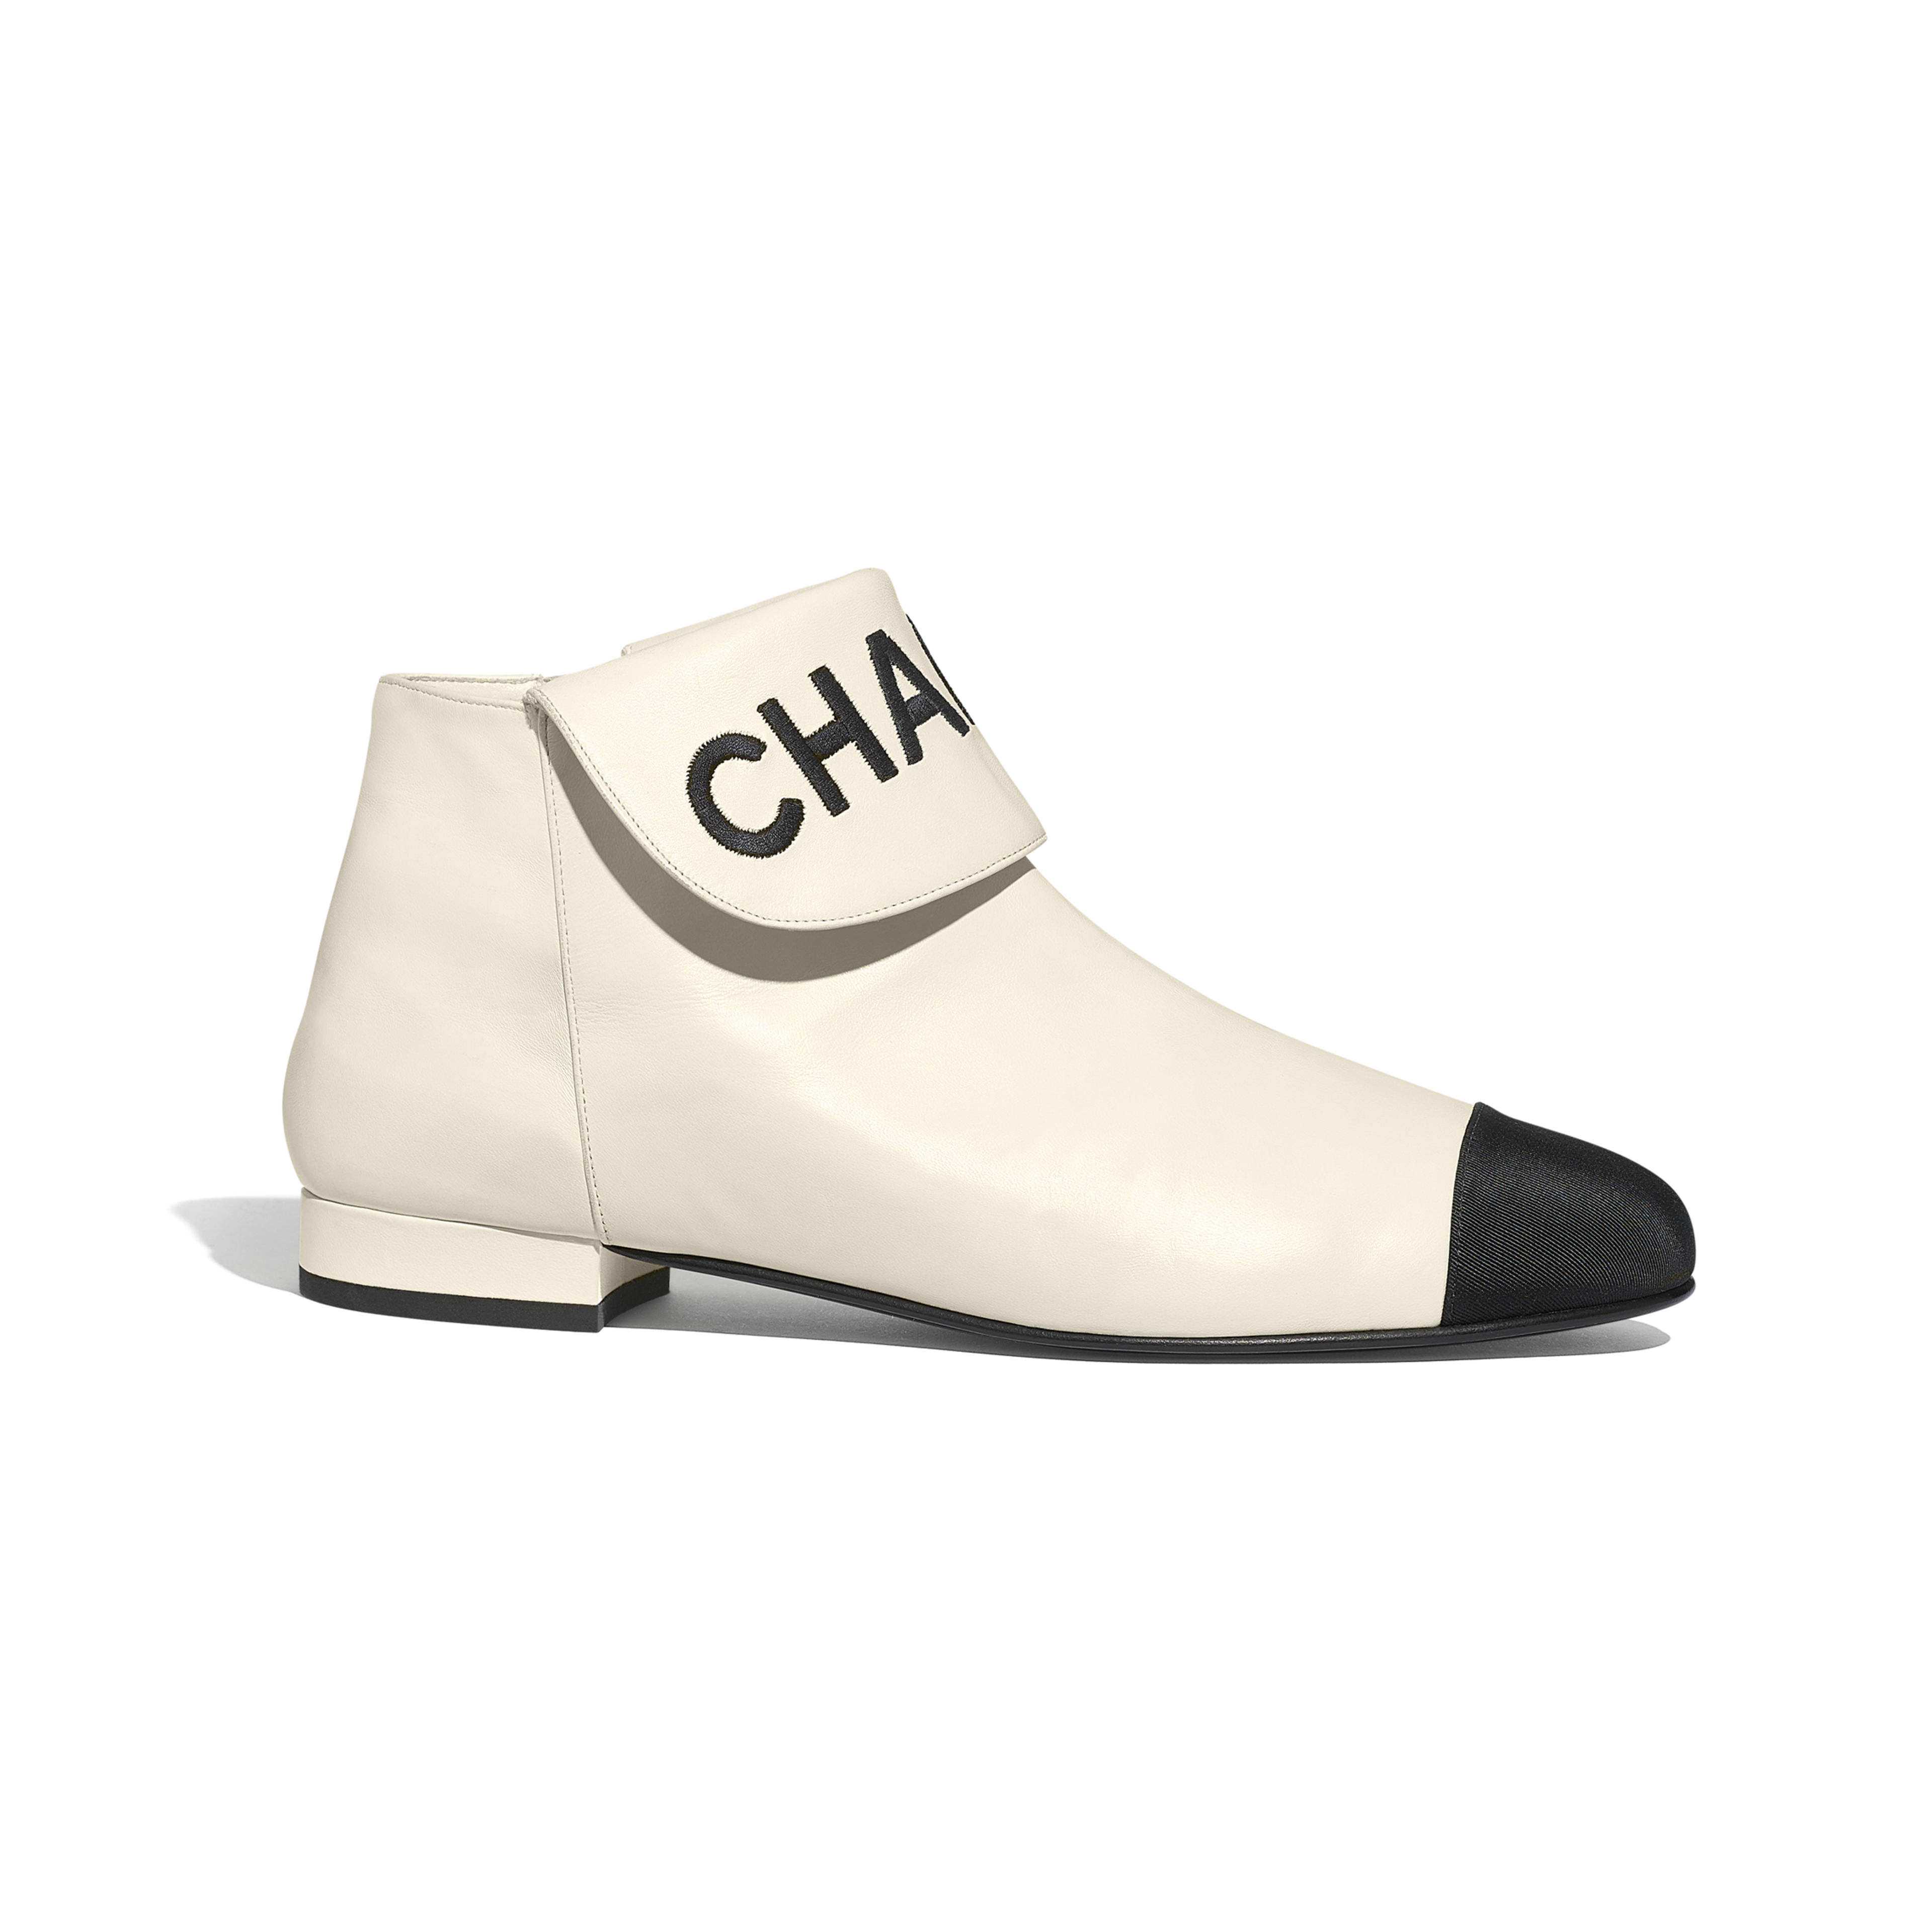 Ankle Boots - Ivory & Black - Lambskin & Grosgrain - Default view - see full sized version